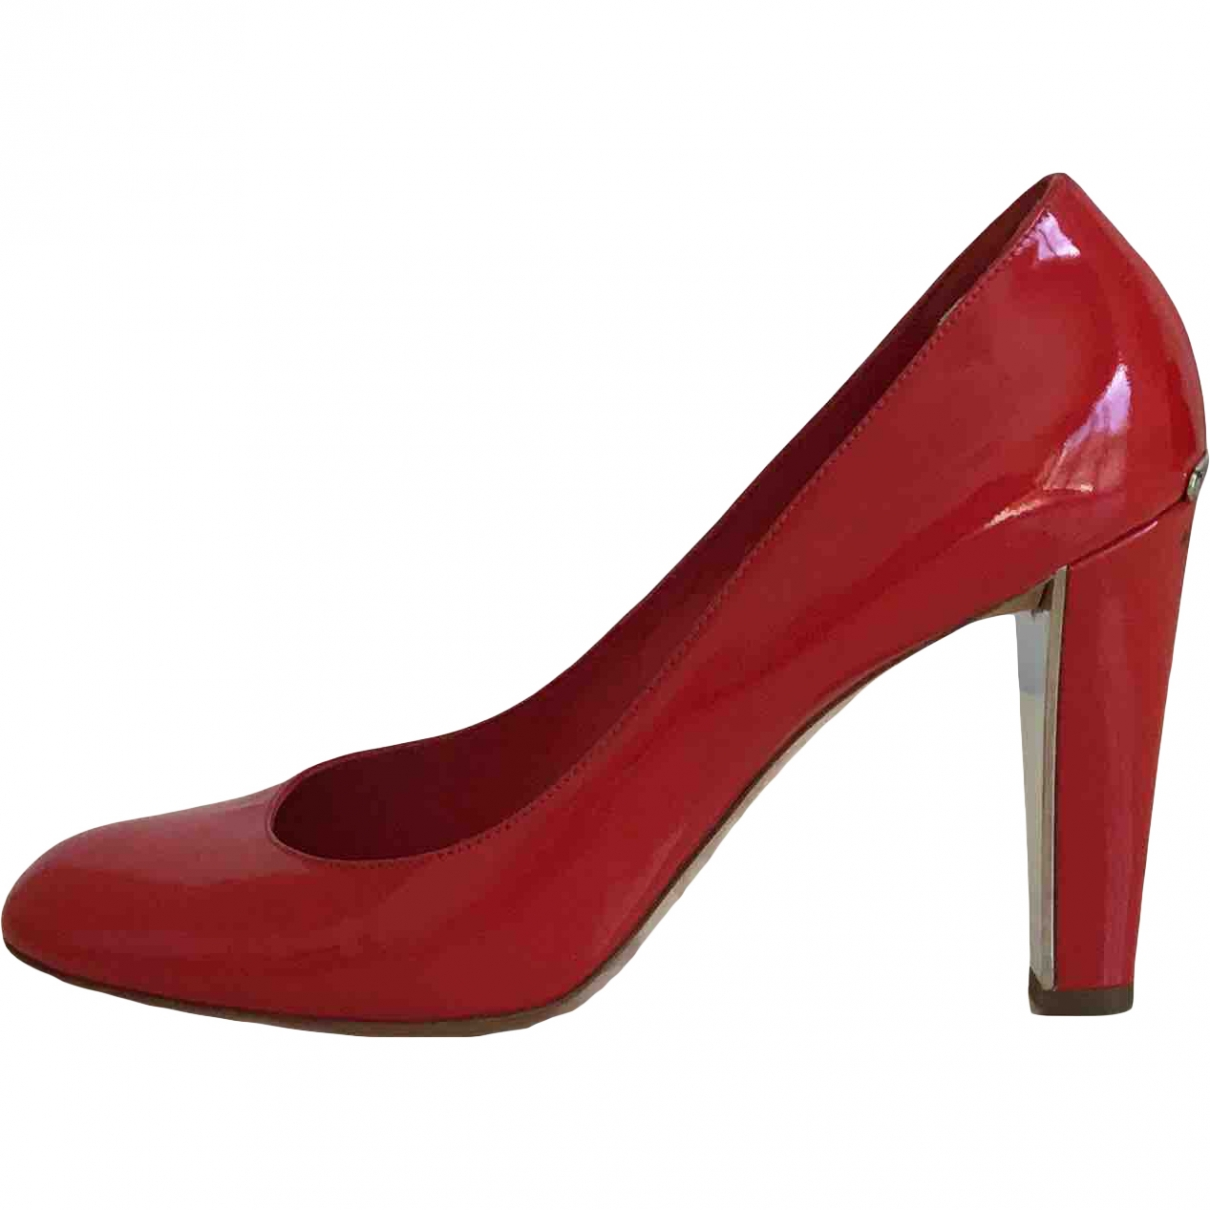 Dior \N Red Patent leather Heels for Women 40 EU